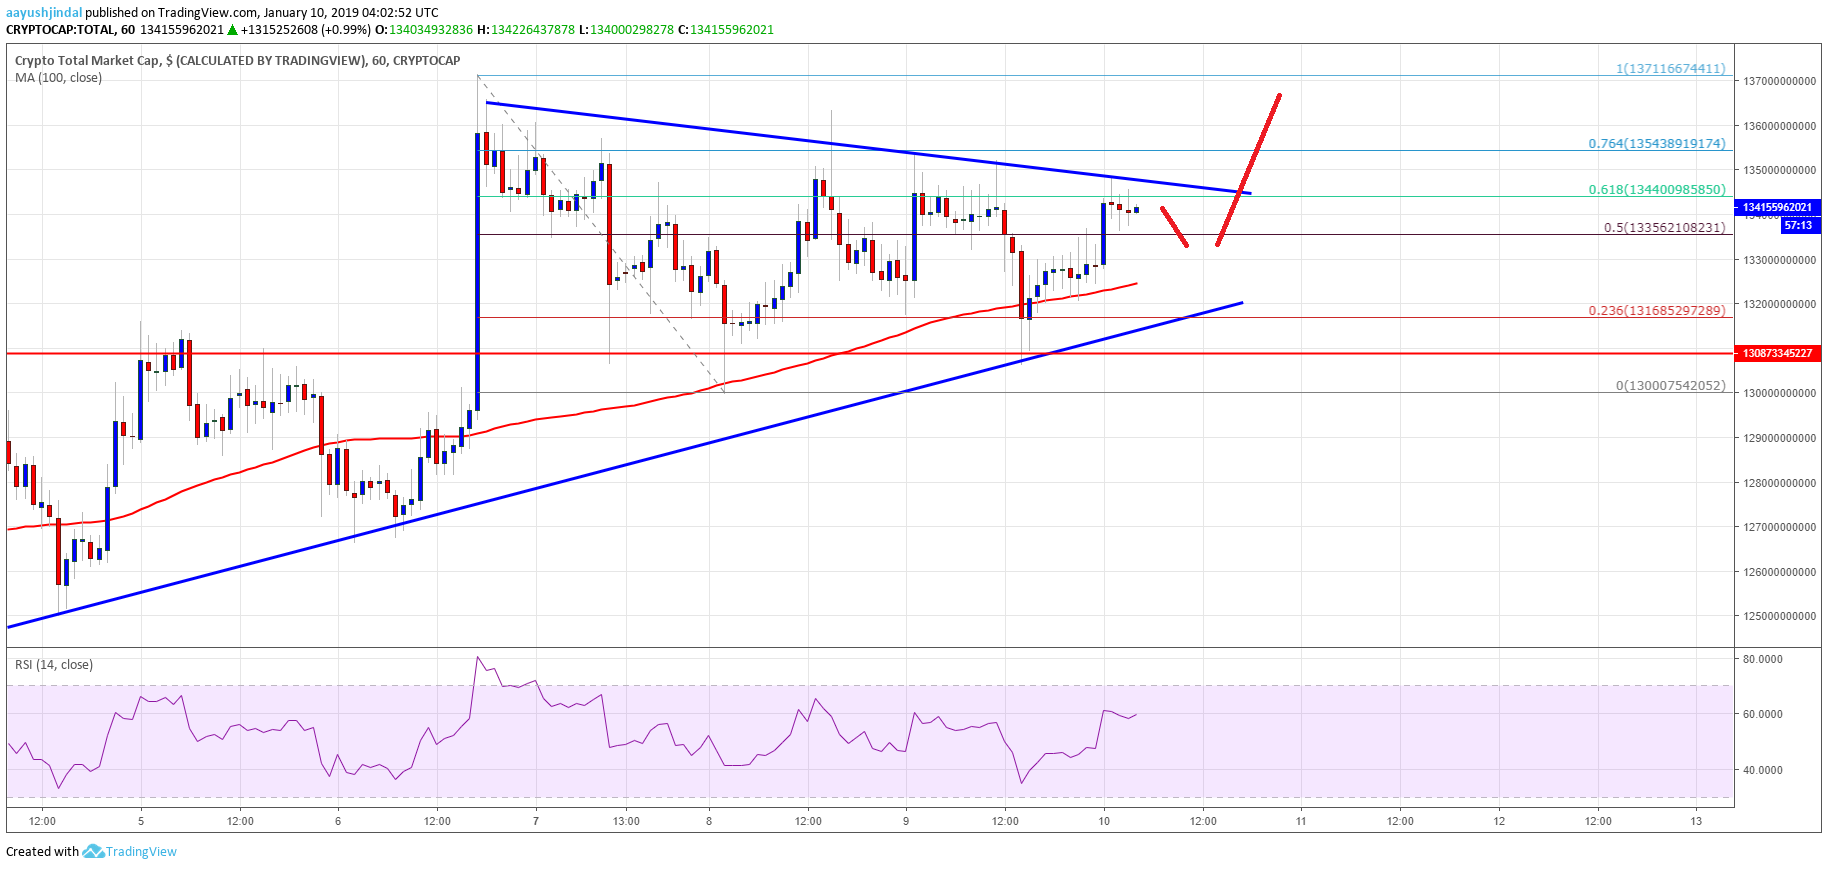 Crypto Market Cap Total EOS, Bitcoin Cash, Tron (TRX), ADA Price Analysis